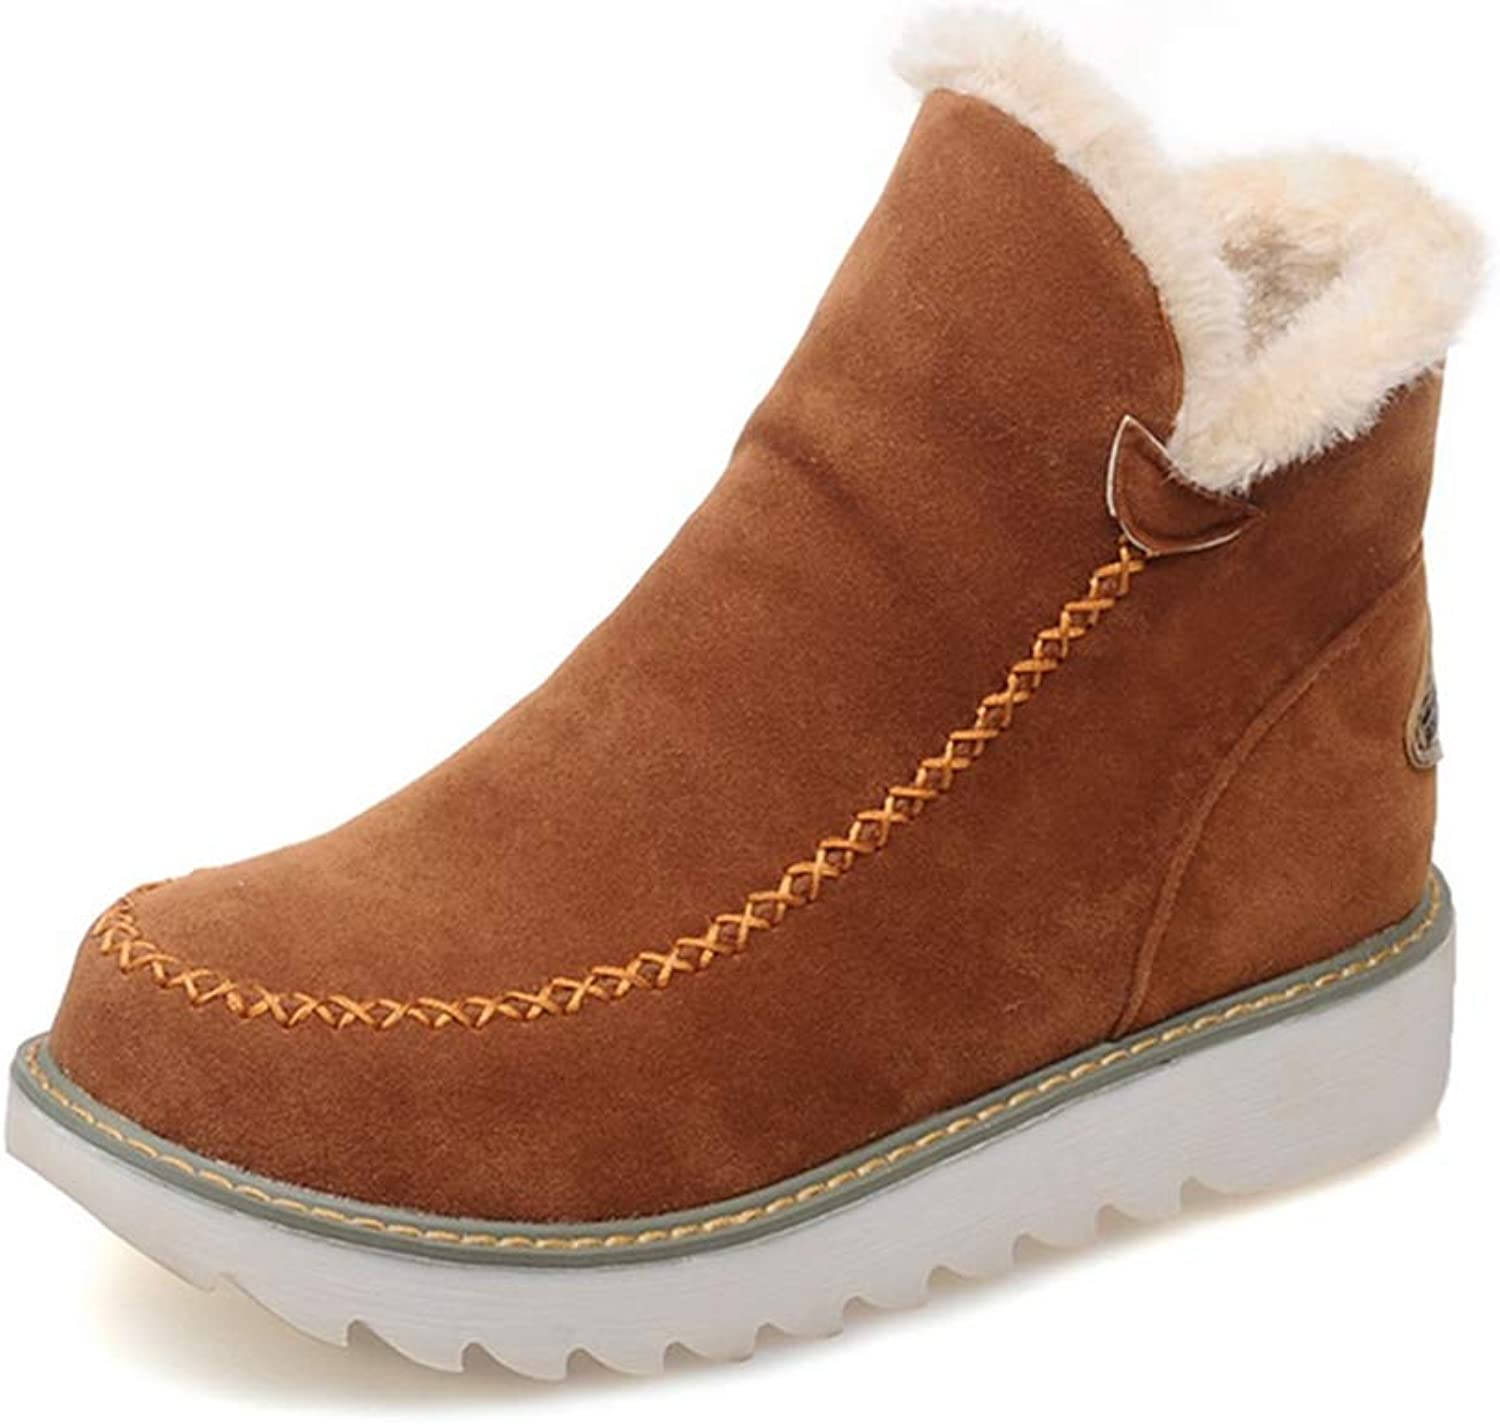 Snow Boots Autumn Winter Classic Flats Women Winter Boots Warm Fur Plush Insole Ankle Boots Woman shoes